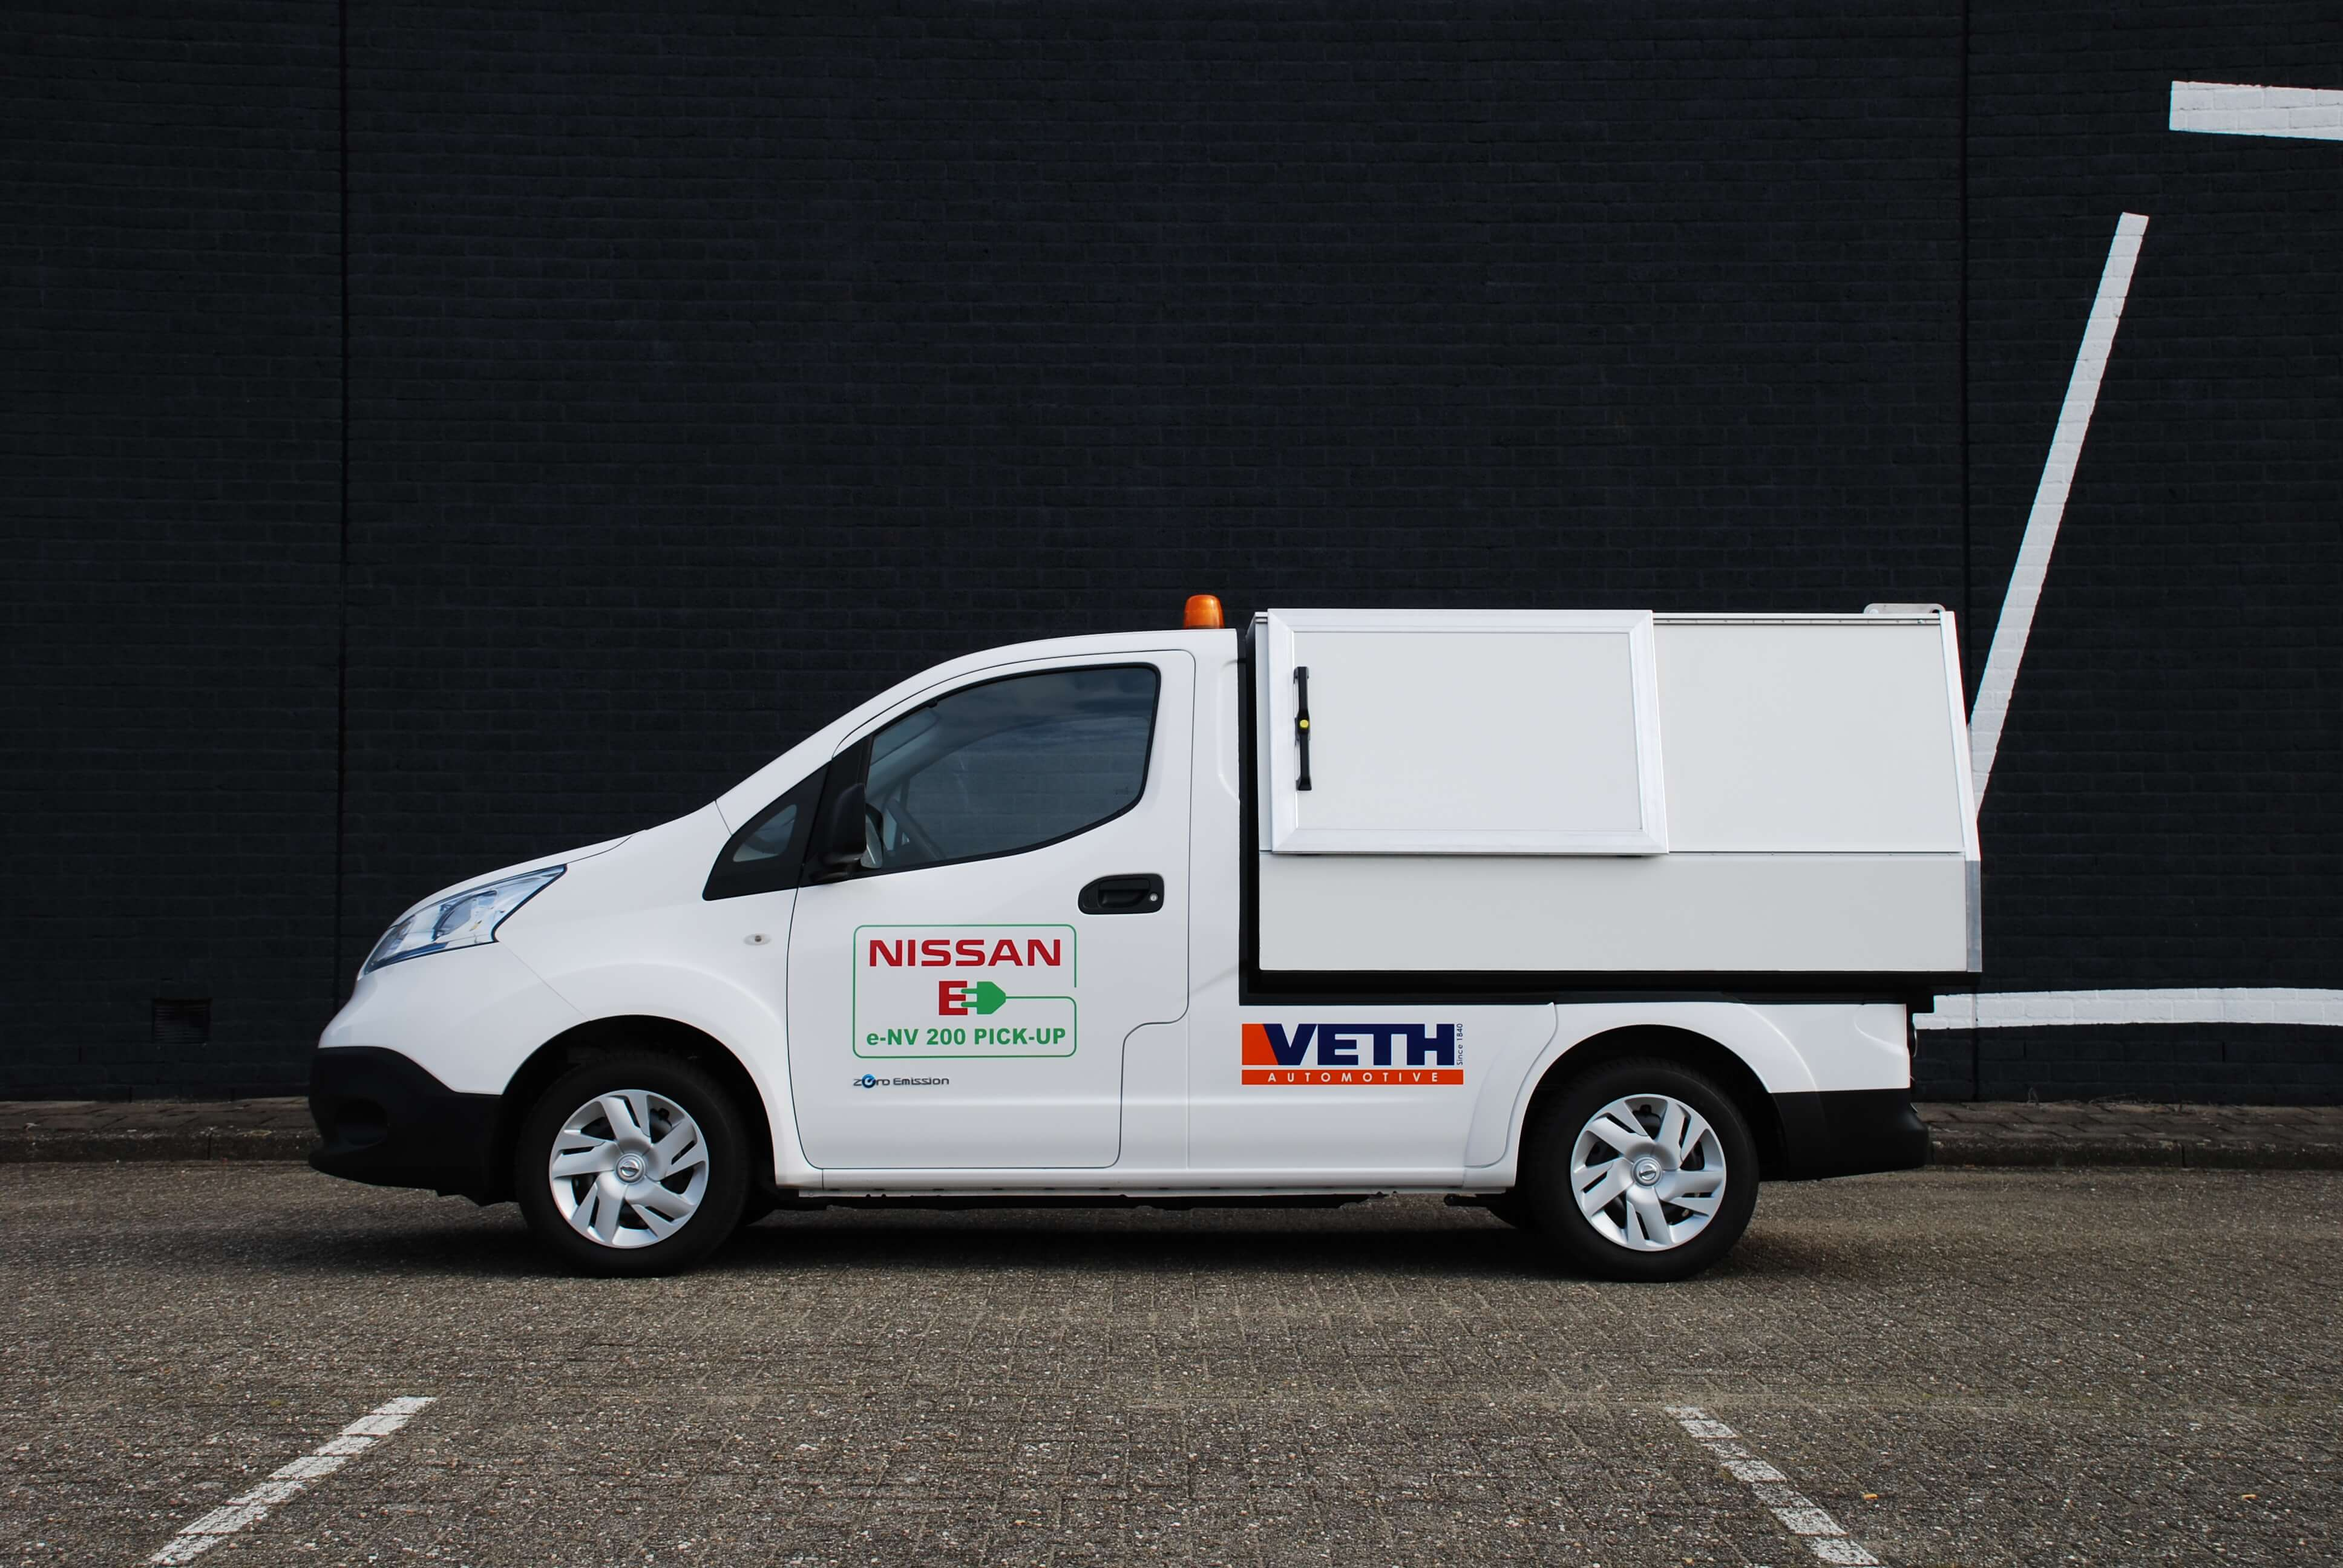 vehicle conversions e-nv200 dust sweeper